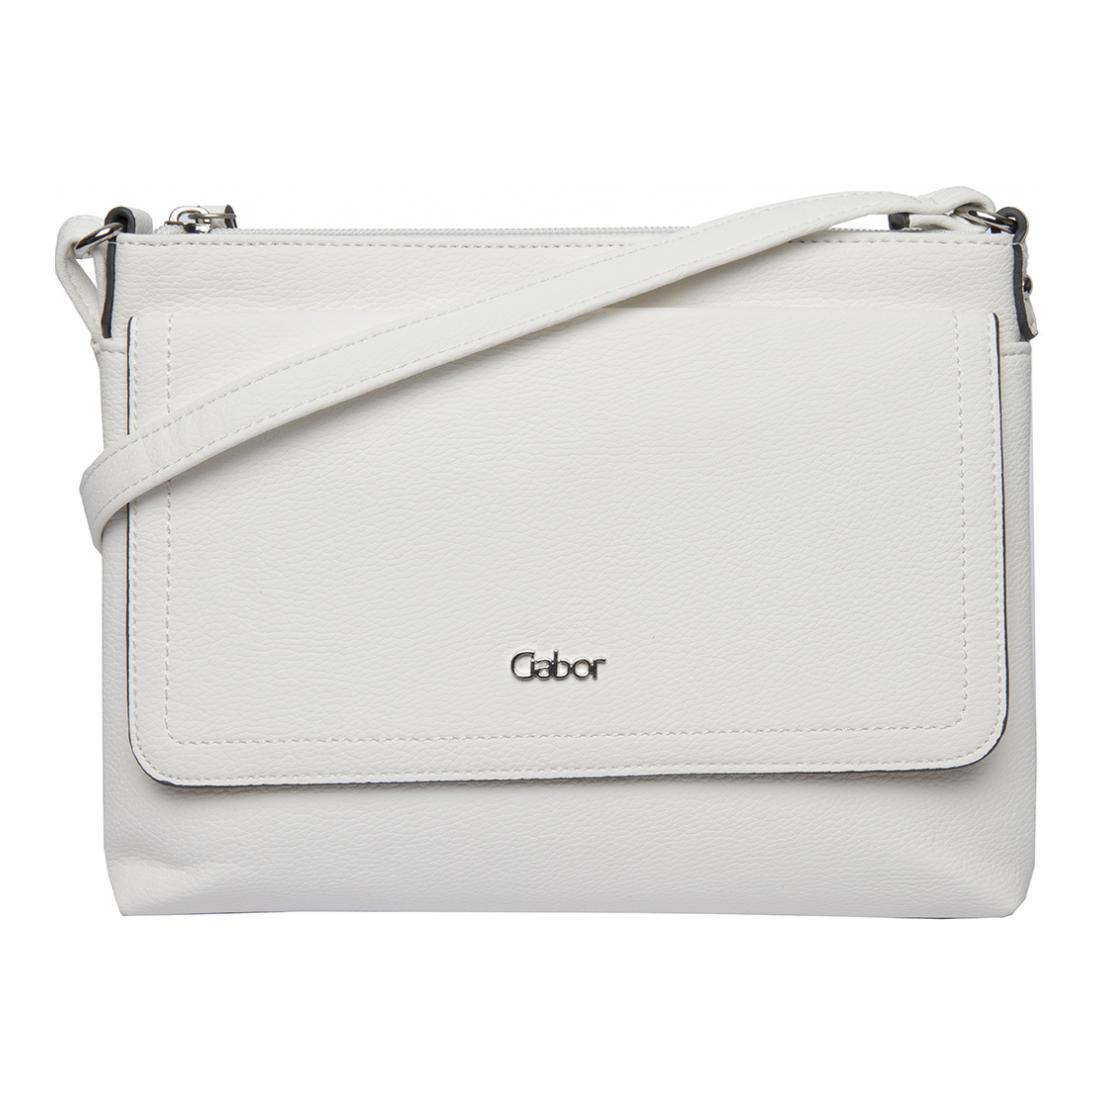 Gabor Tasche DINA Cross bag